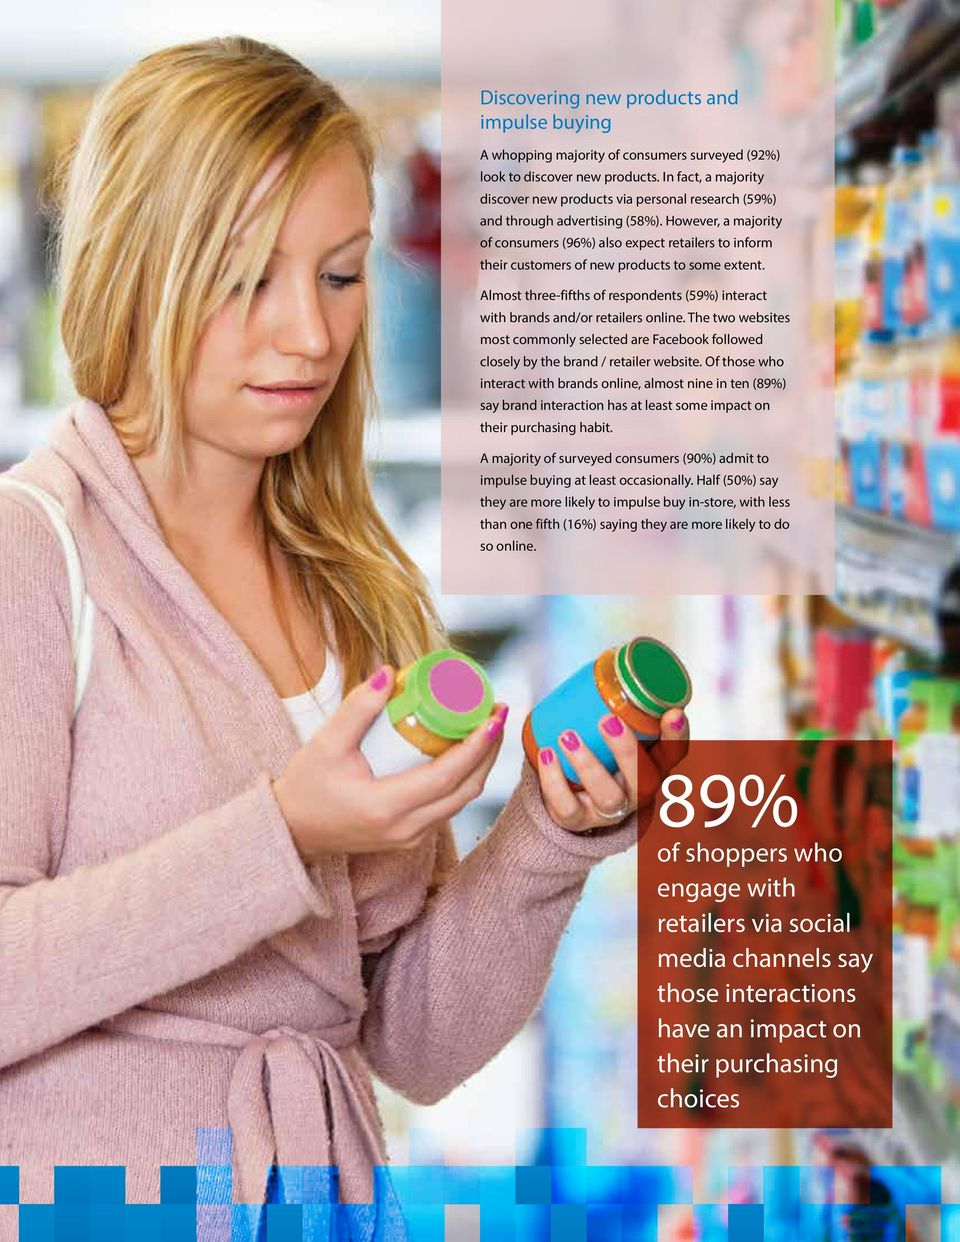 However, a majority of consumers (96%) also expect retailers to inform their customers of new products to some extent.